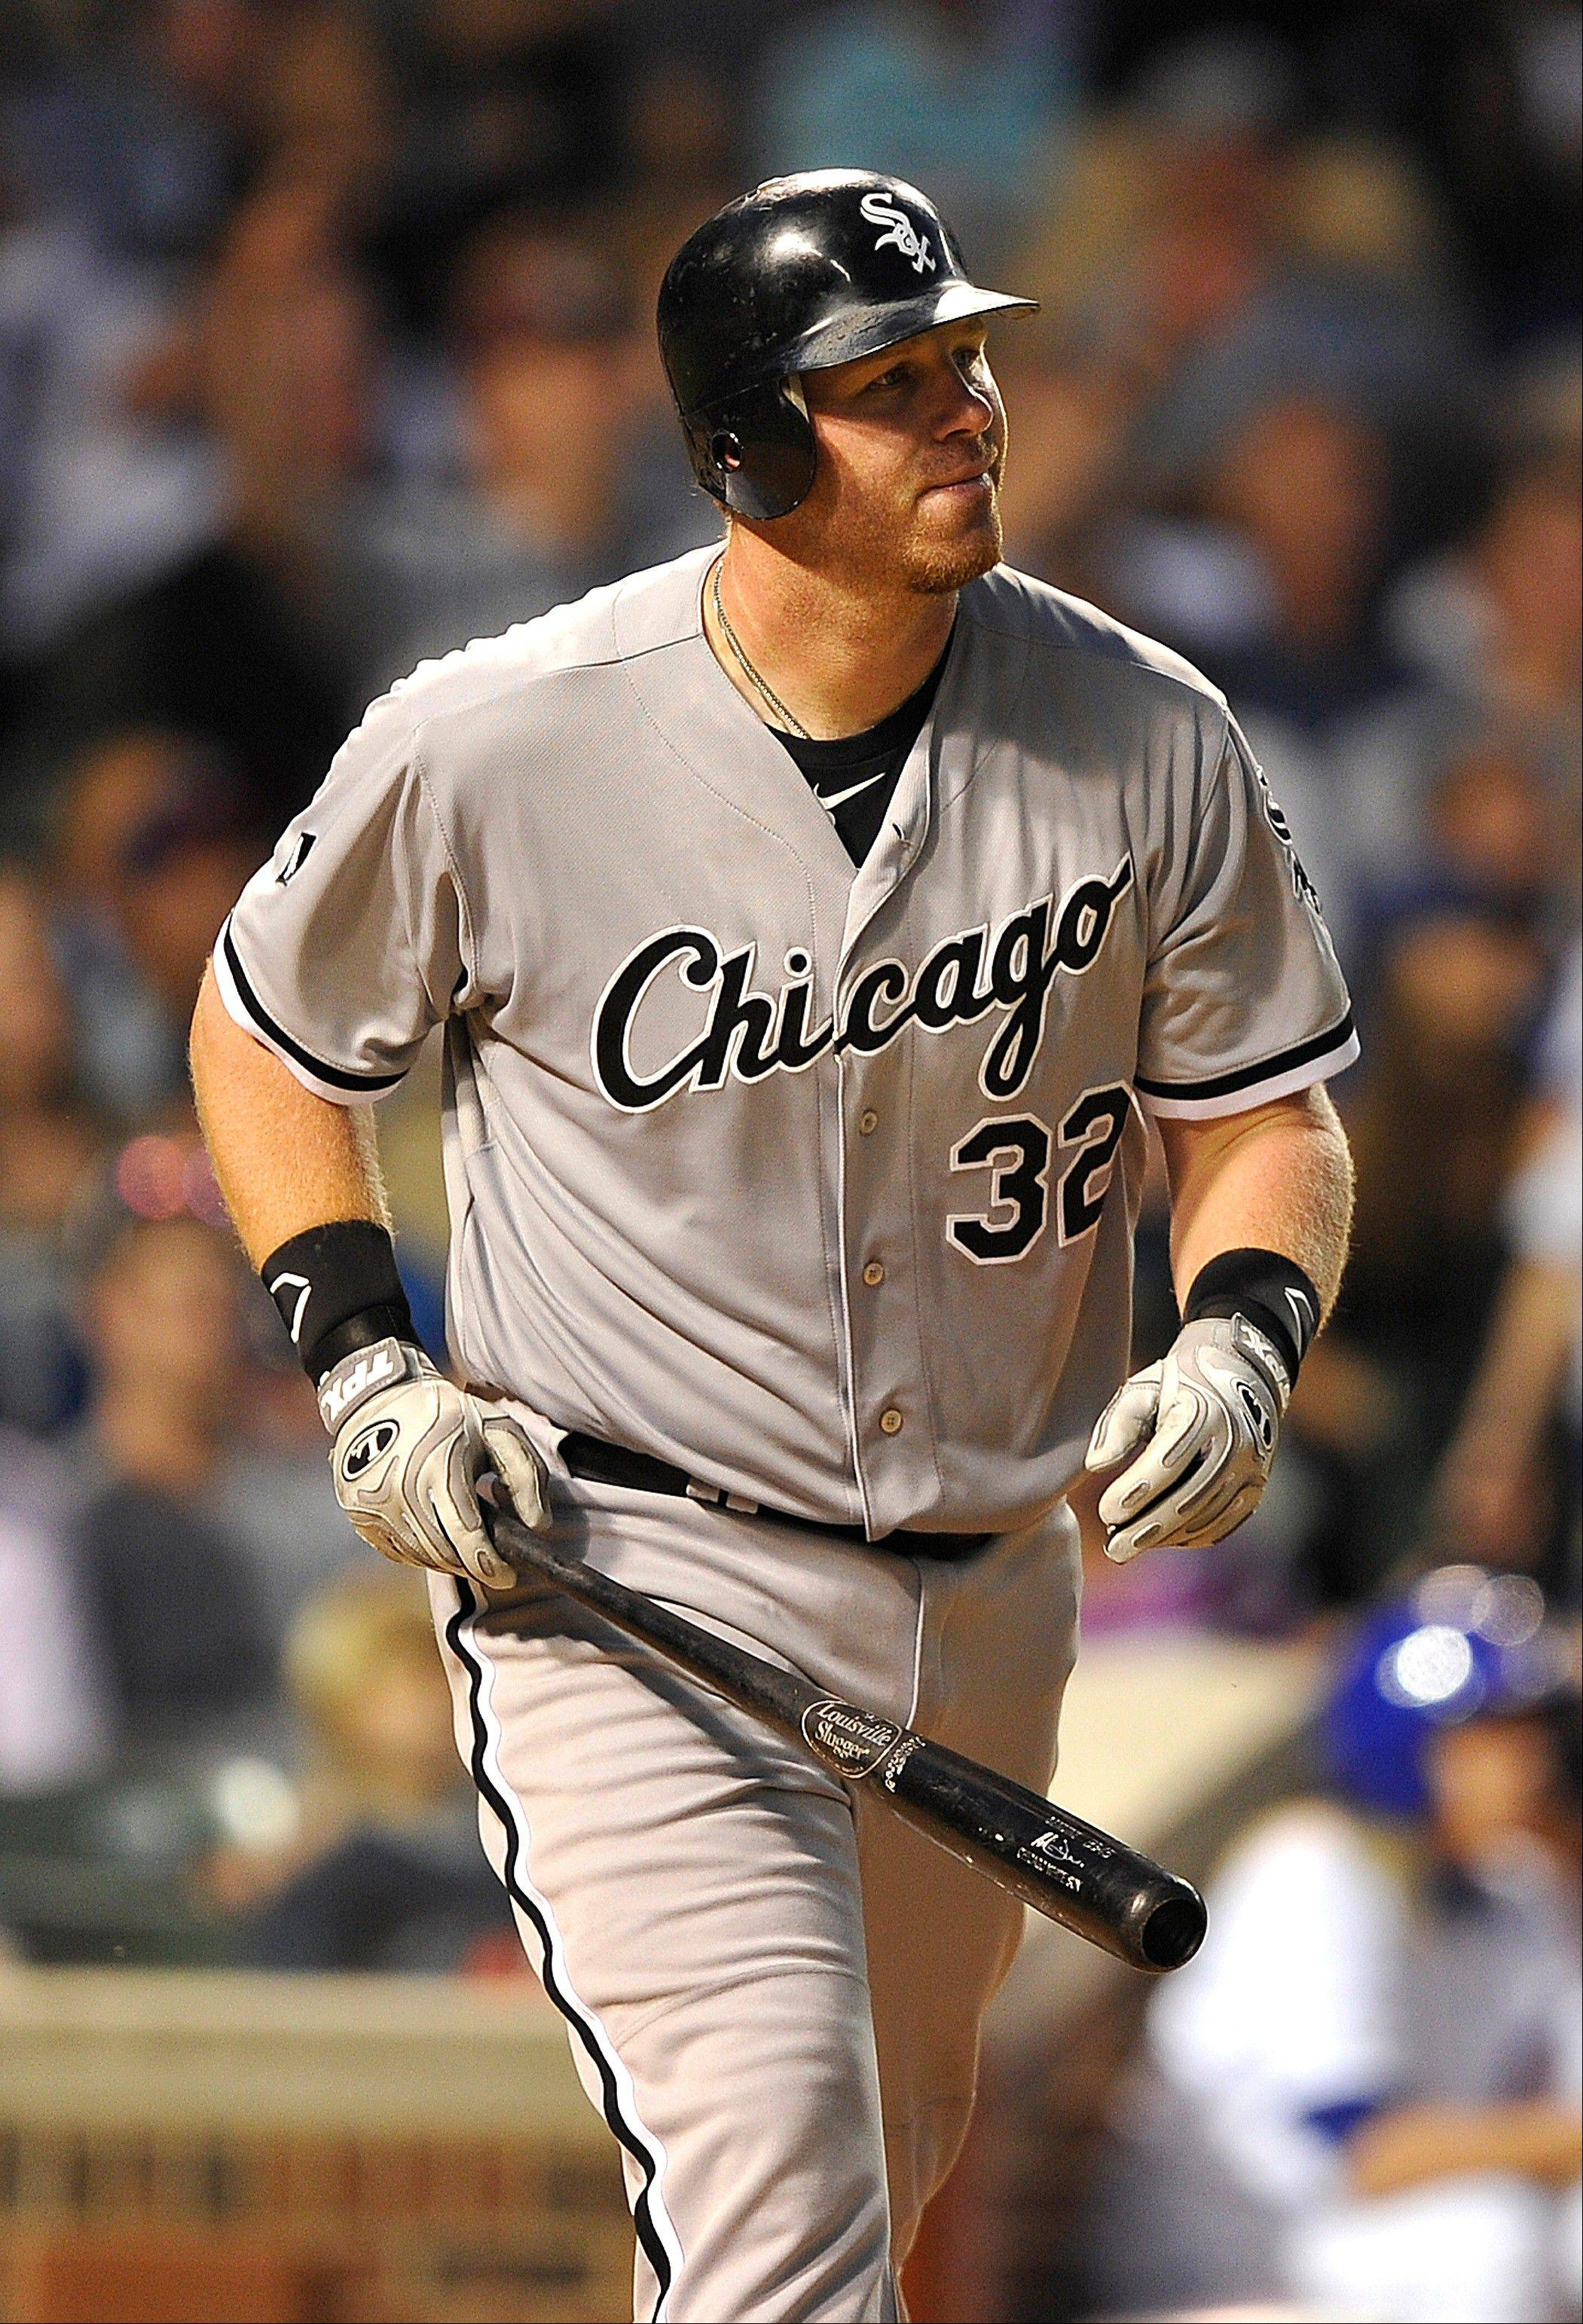 White Sox slugger Adam Dunn has been scratched from the lineup for Wednesday night's game against the St. Louis Cardinals because of a sprained right ankle.